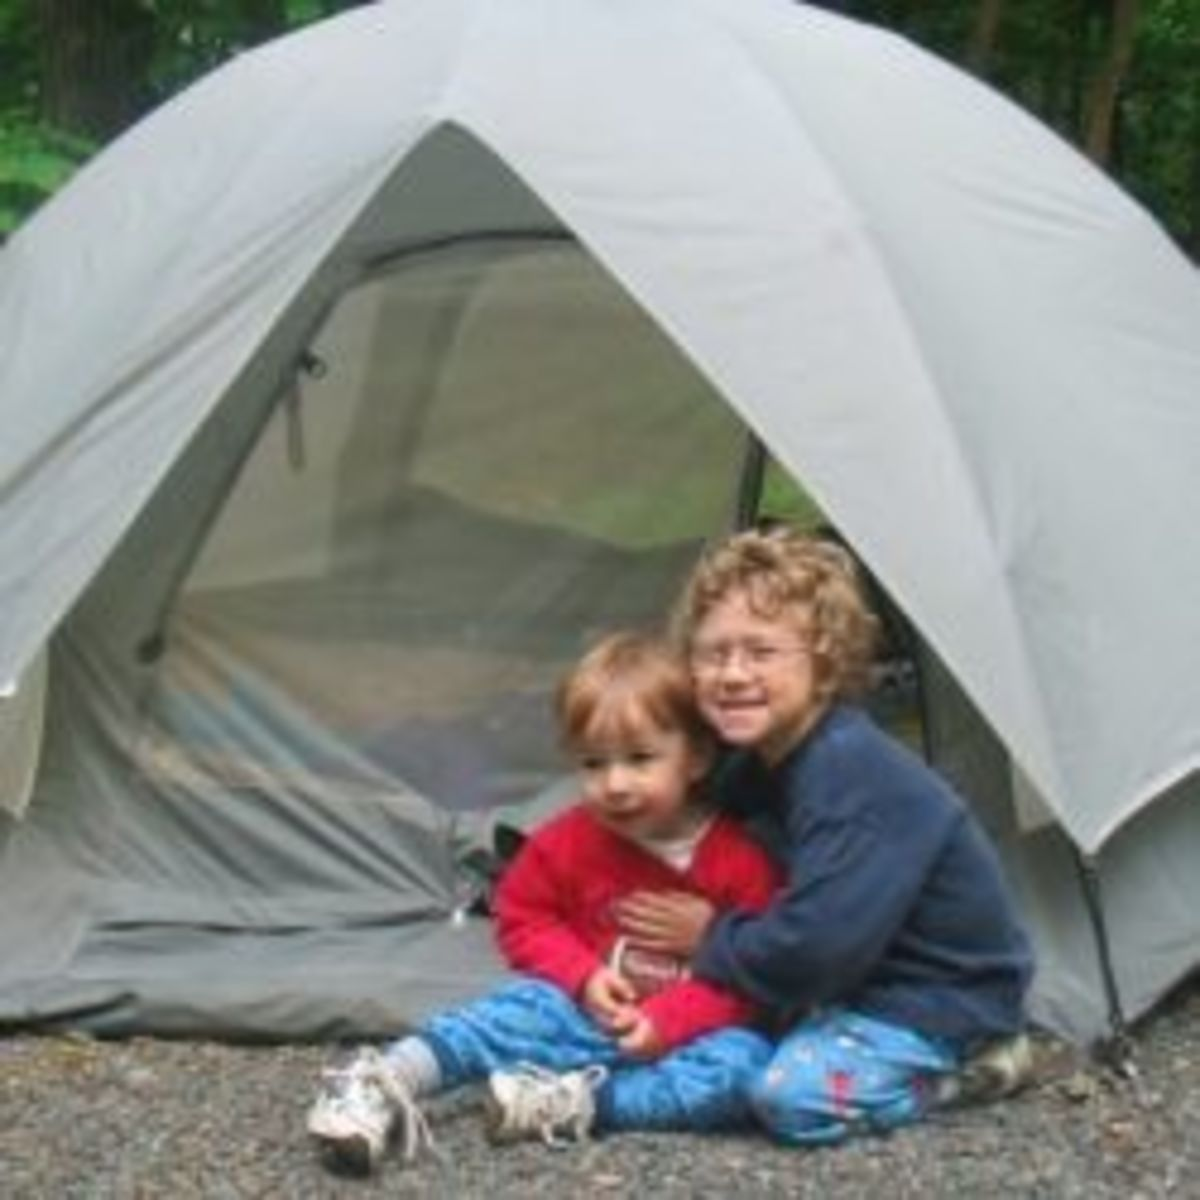 Pictures taken on several camping trips enjoyed over the years.